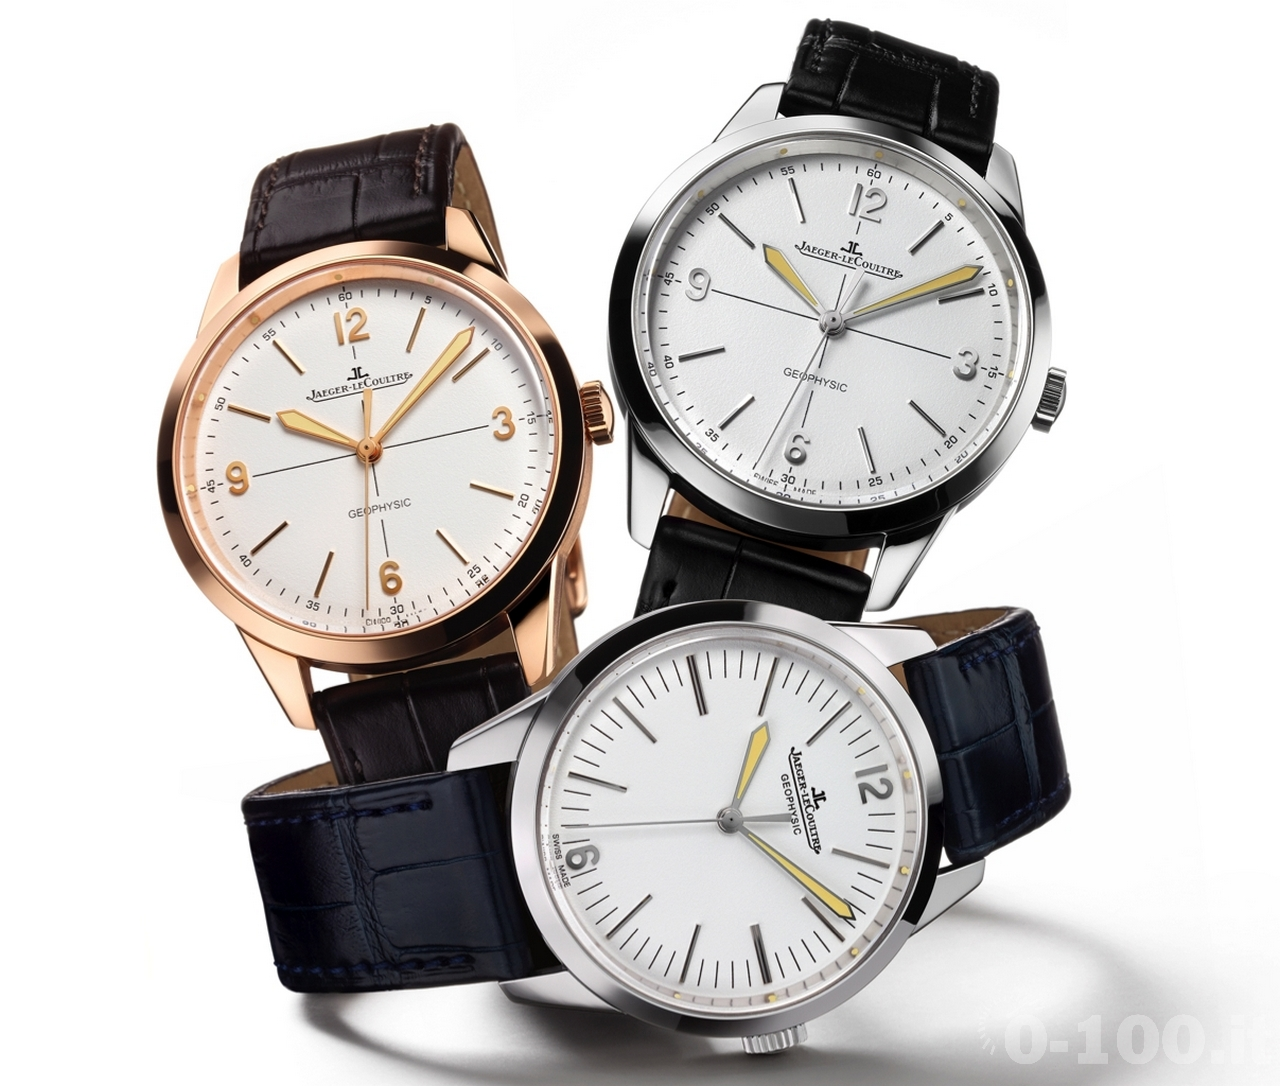 jaeger-lecoultre-geophysic-1958-limited-edition-prezzo-price-0-100_1